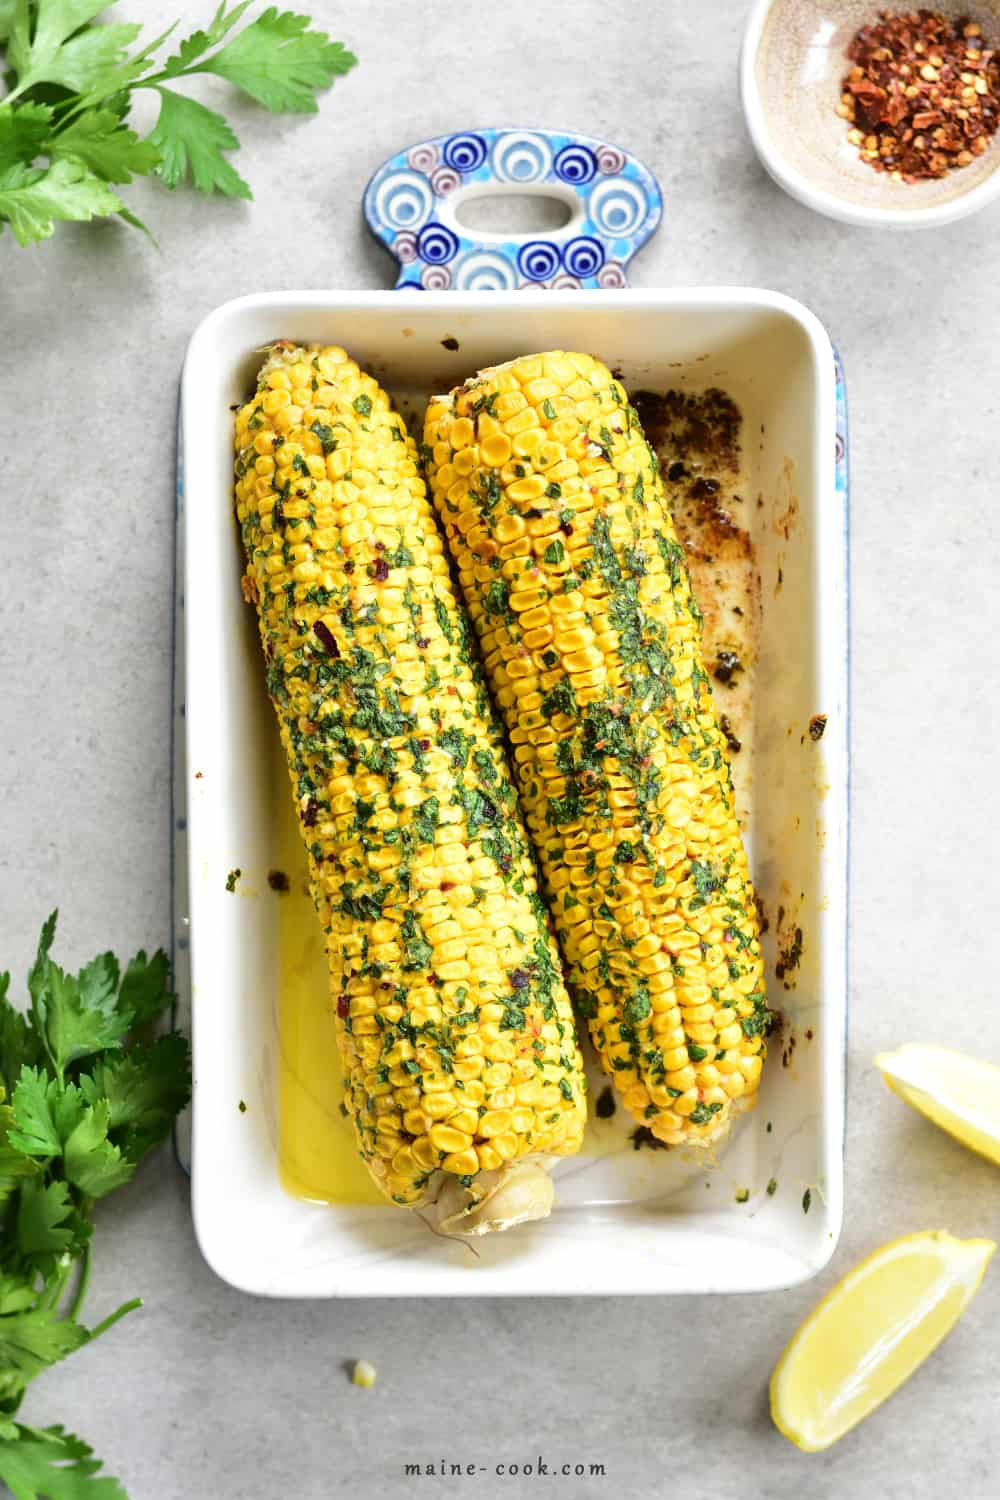 Pieczona kukurydza z ziołowym masłem z chilli Oven-roasted corn on the cob with herb and chilli butter